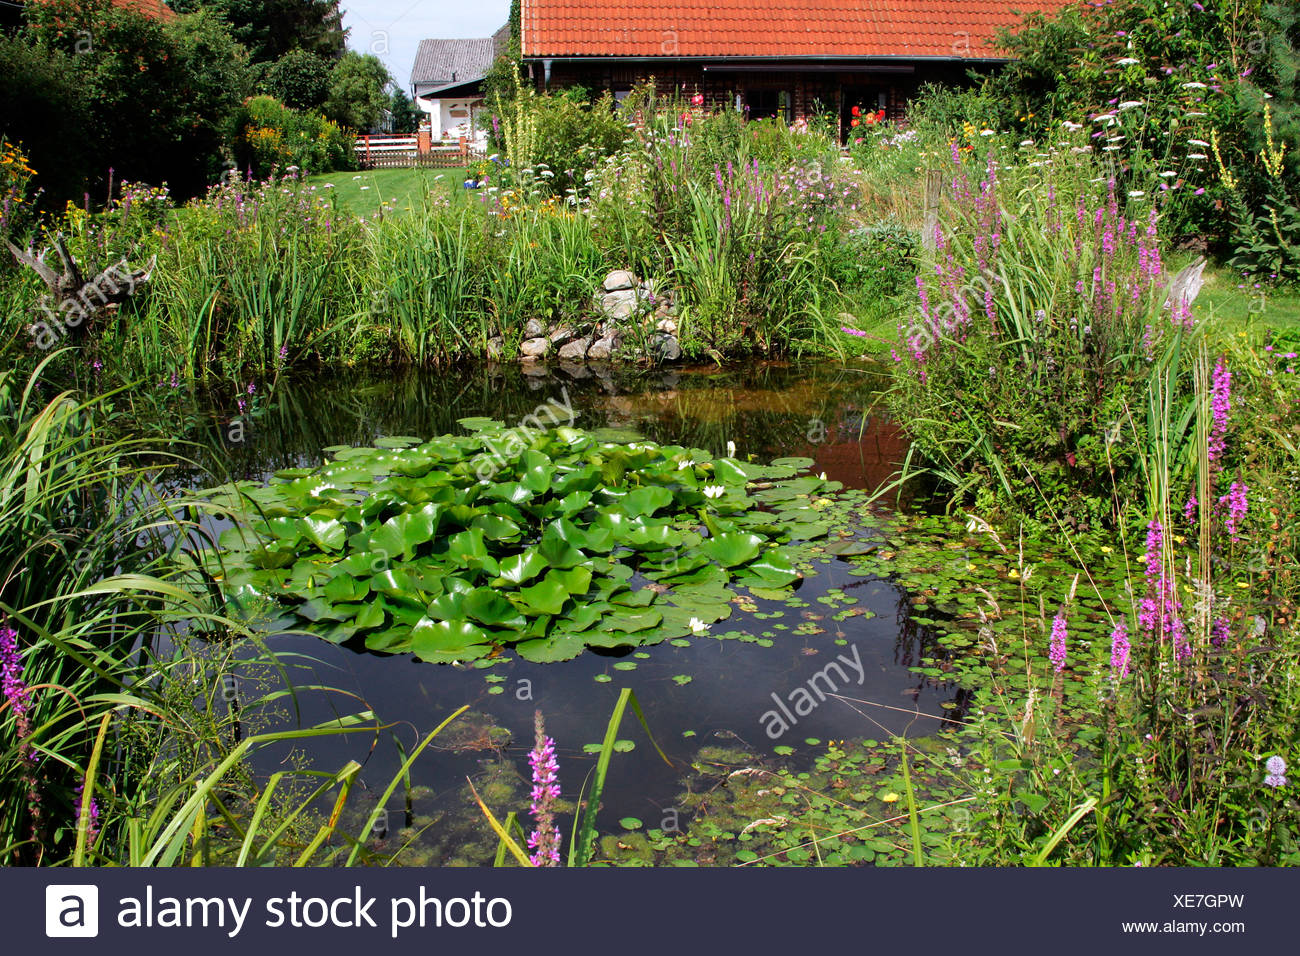 Natural garden with pond in summertime, European White Waterlily (Nymphaea alba), Purple Loosestrife (Lythrum salicaria) and Fr - Stock Image